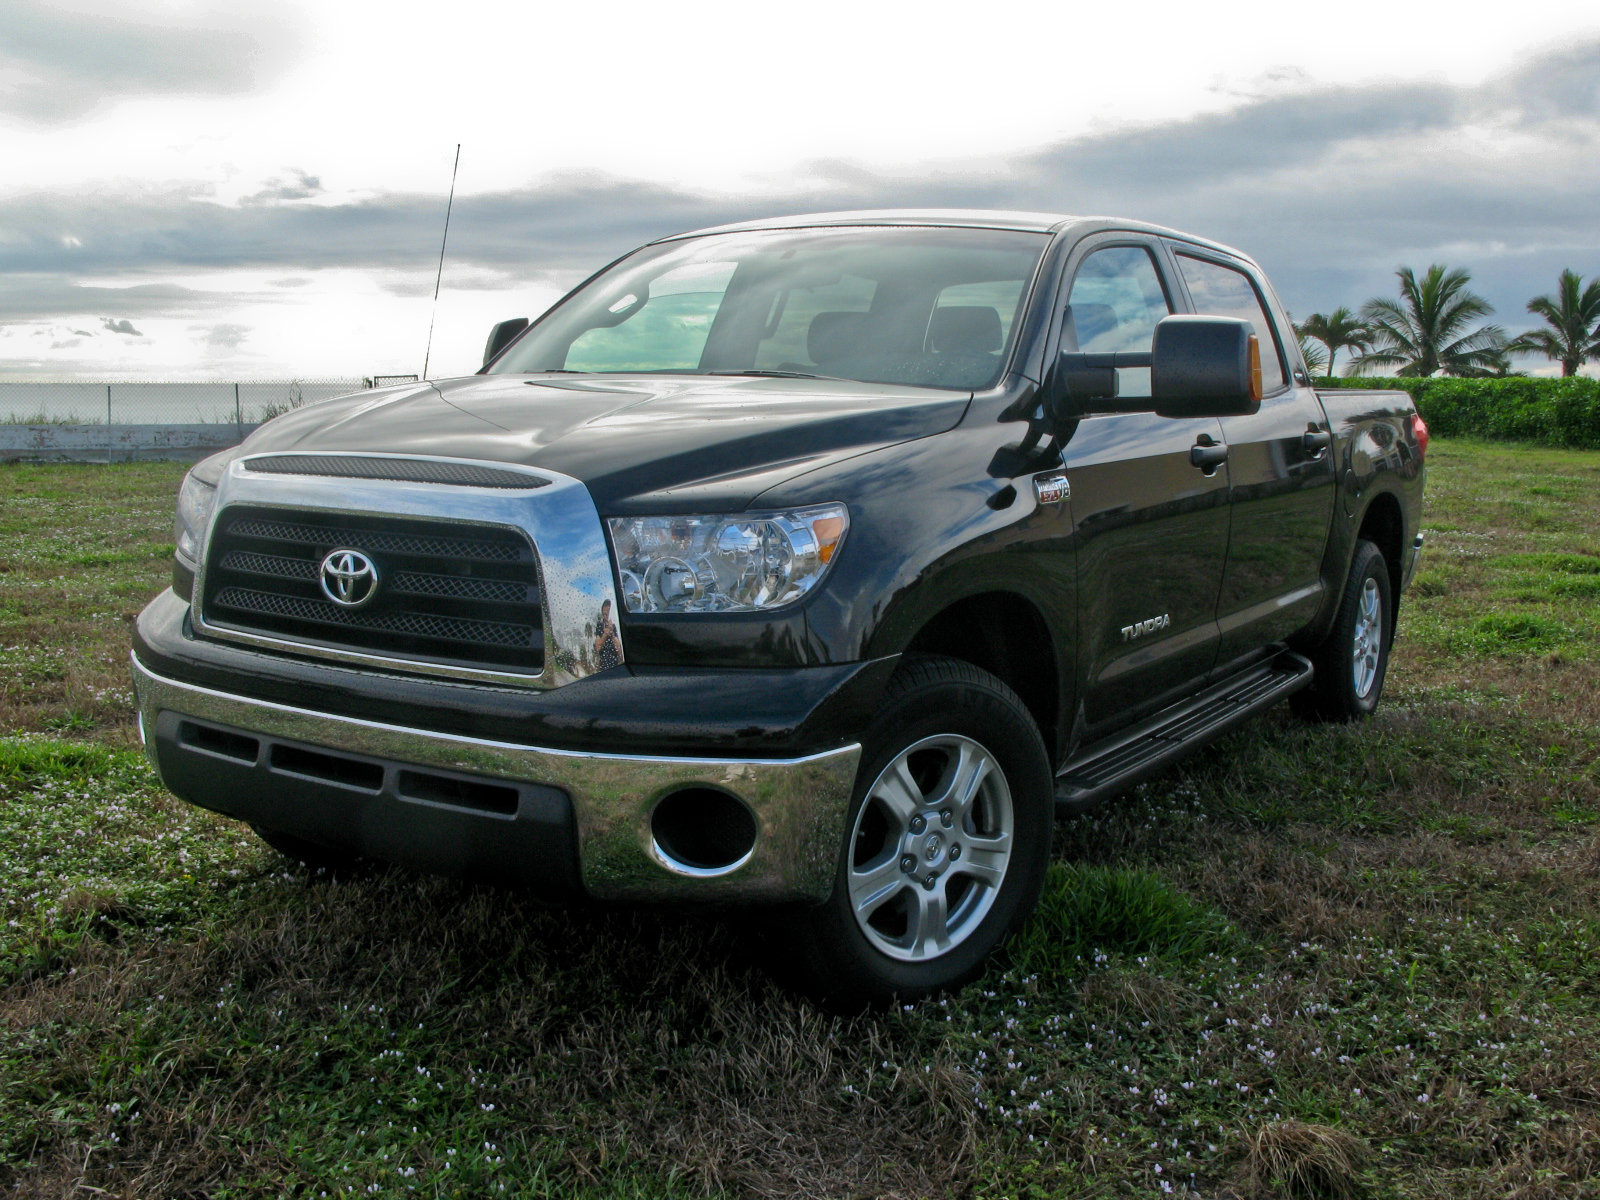 2008 toyota tundra 4x4 crewmax sr5 picture 269198 car review top speed. Black Bedroom Furniture Sets. Home Design Ideas